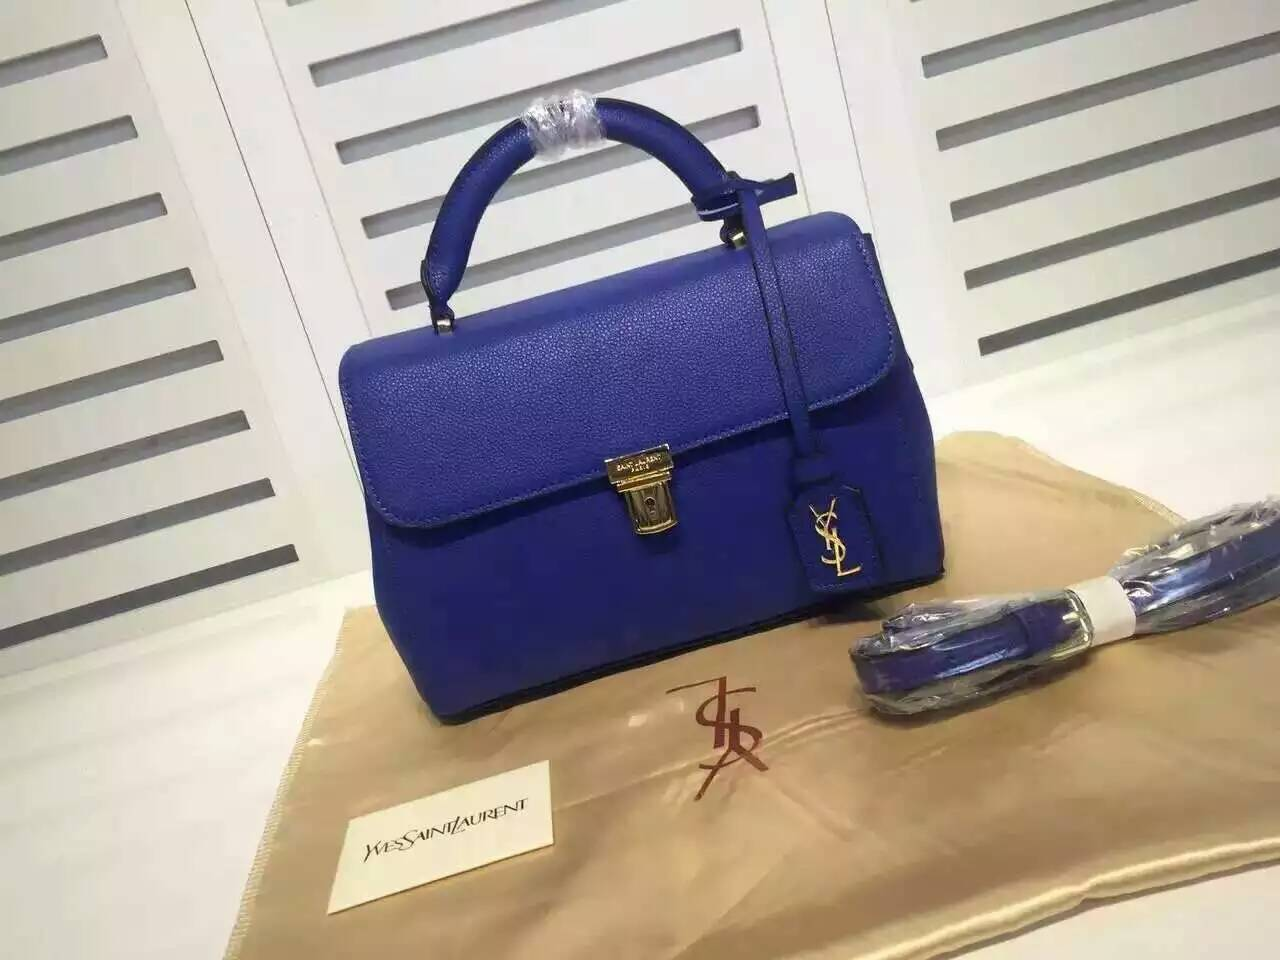 Fall/Winter 2015 Saint Laurent Bag Cheap Sale-Saint Laurent Top Handle Bag in Blue Grained Calfskin Leather